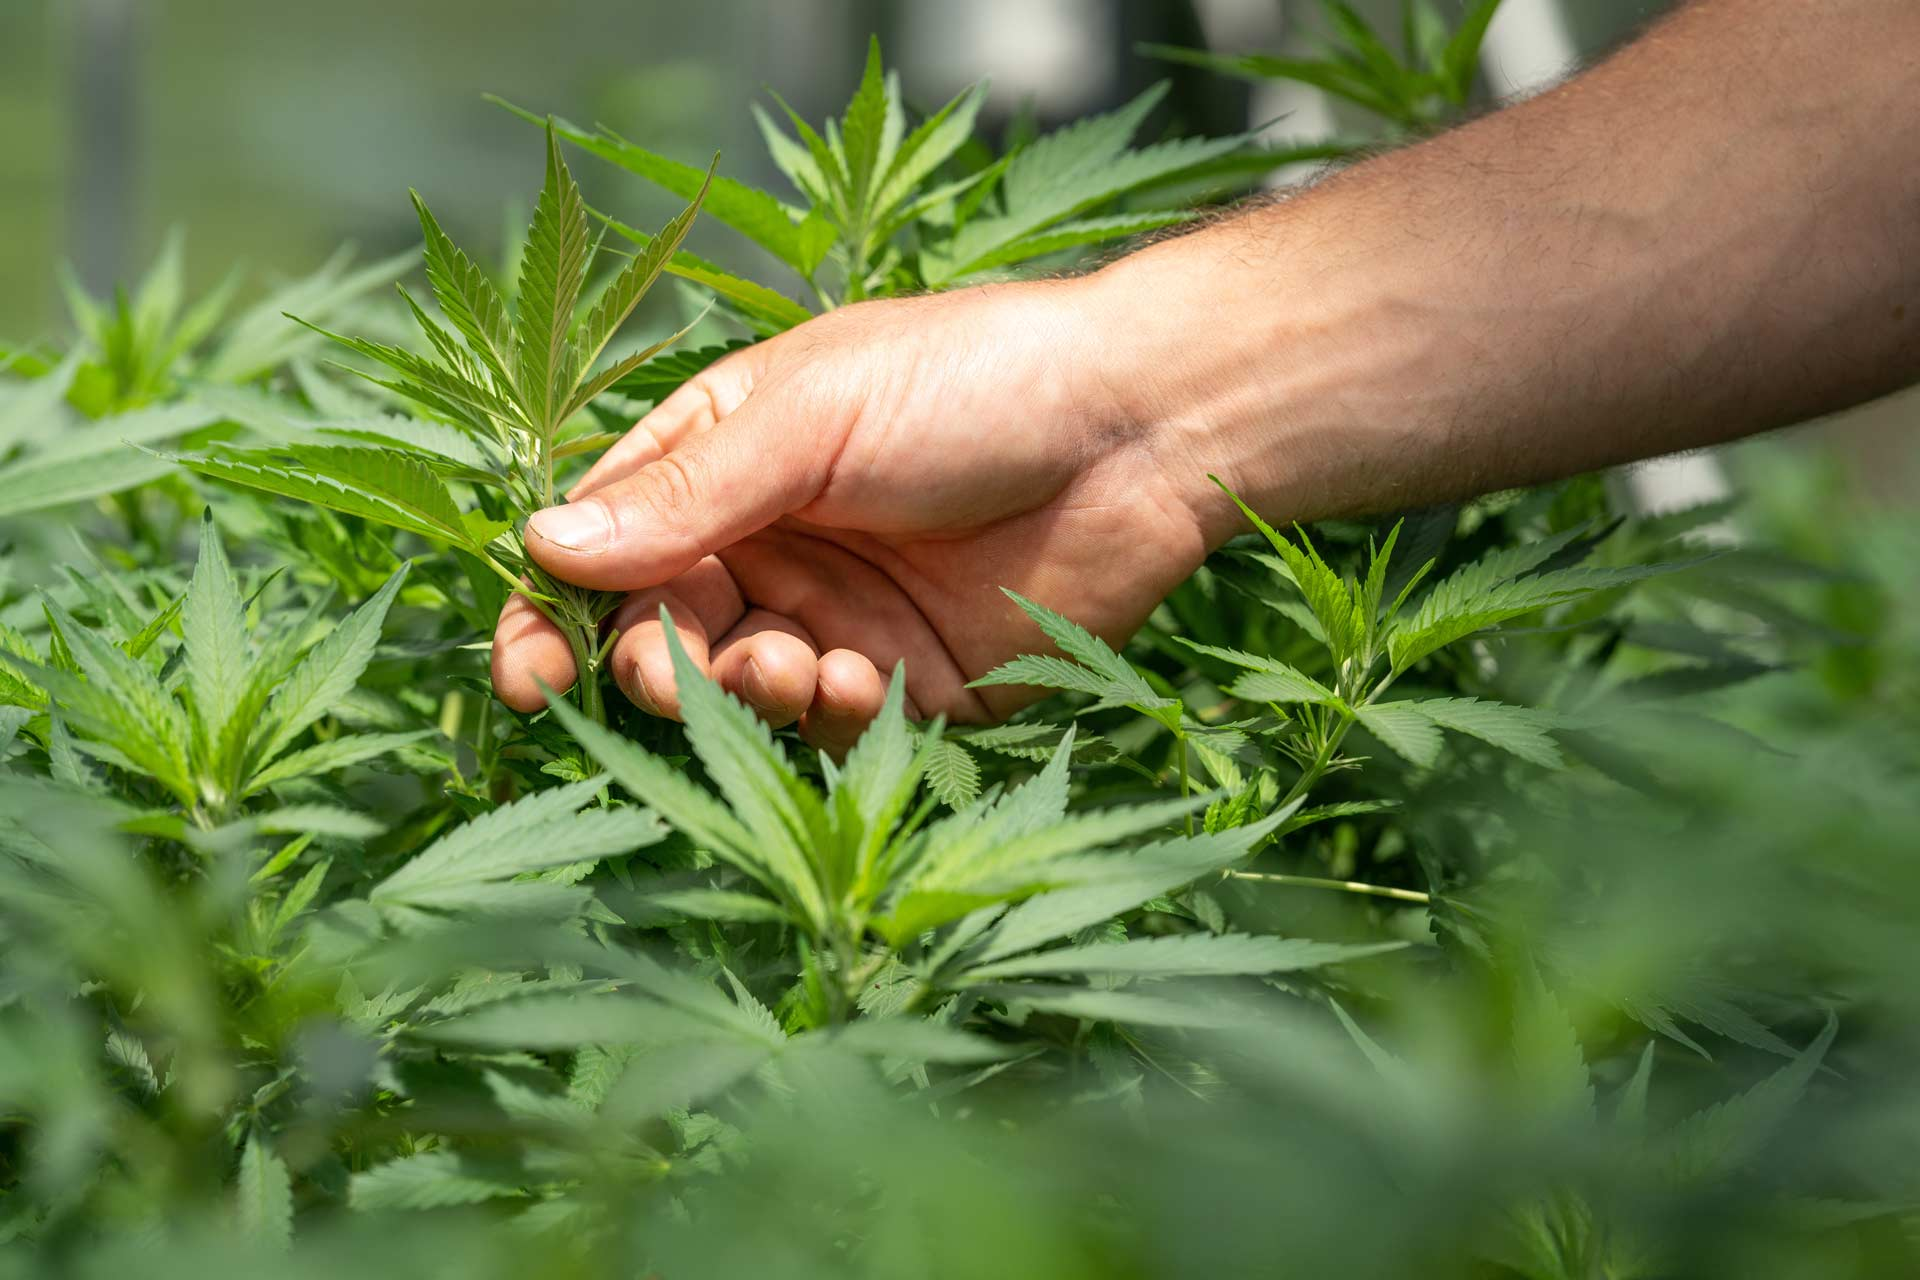 hand touches growing cannabis plant